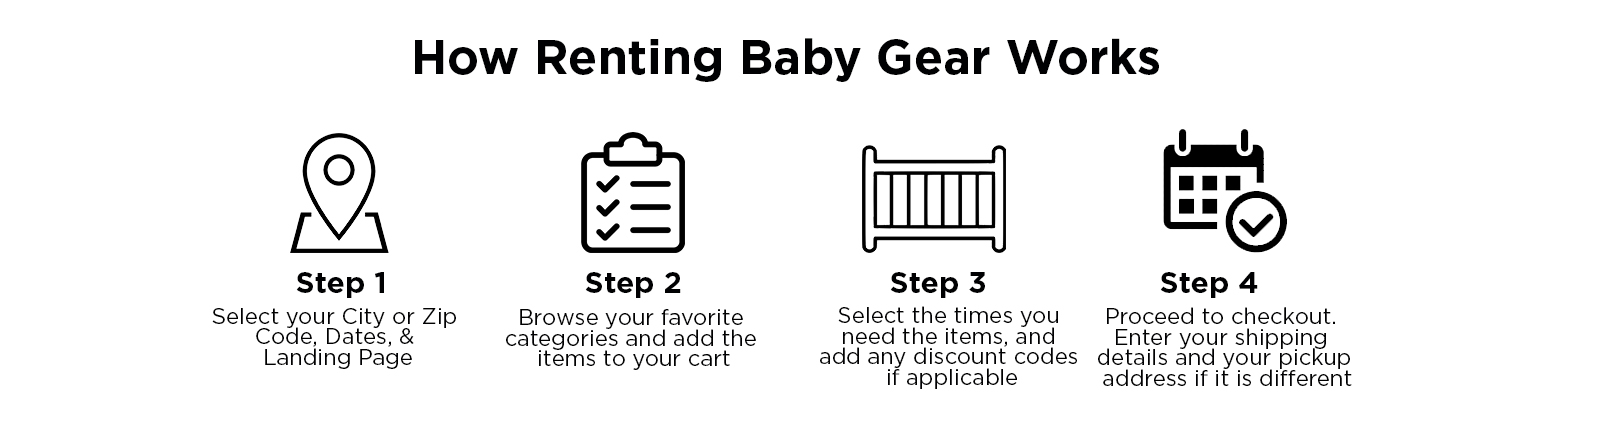 How to Rent Baby Gear